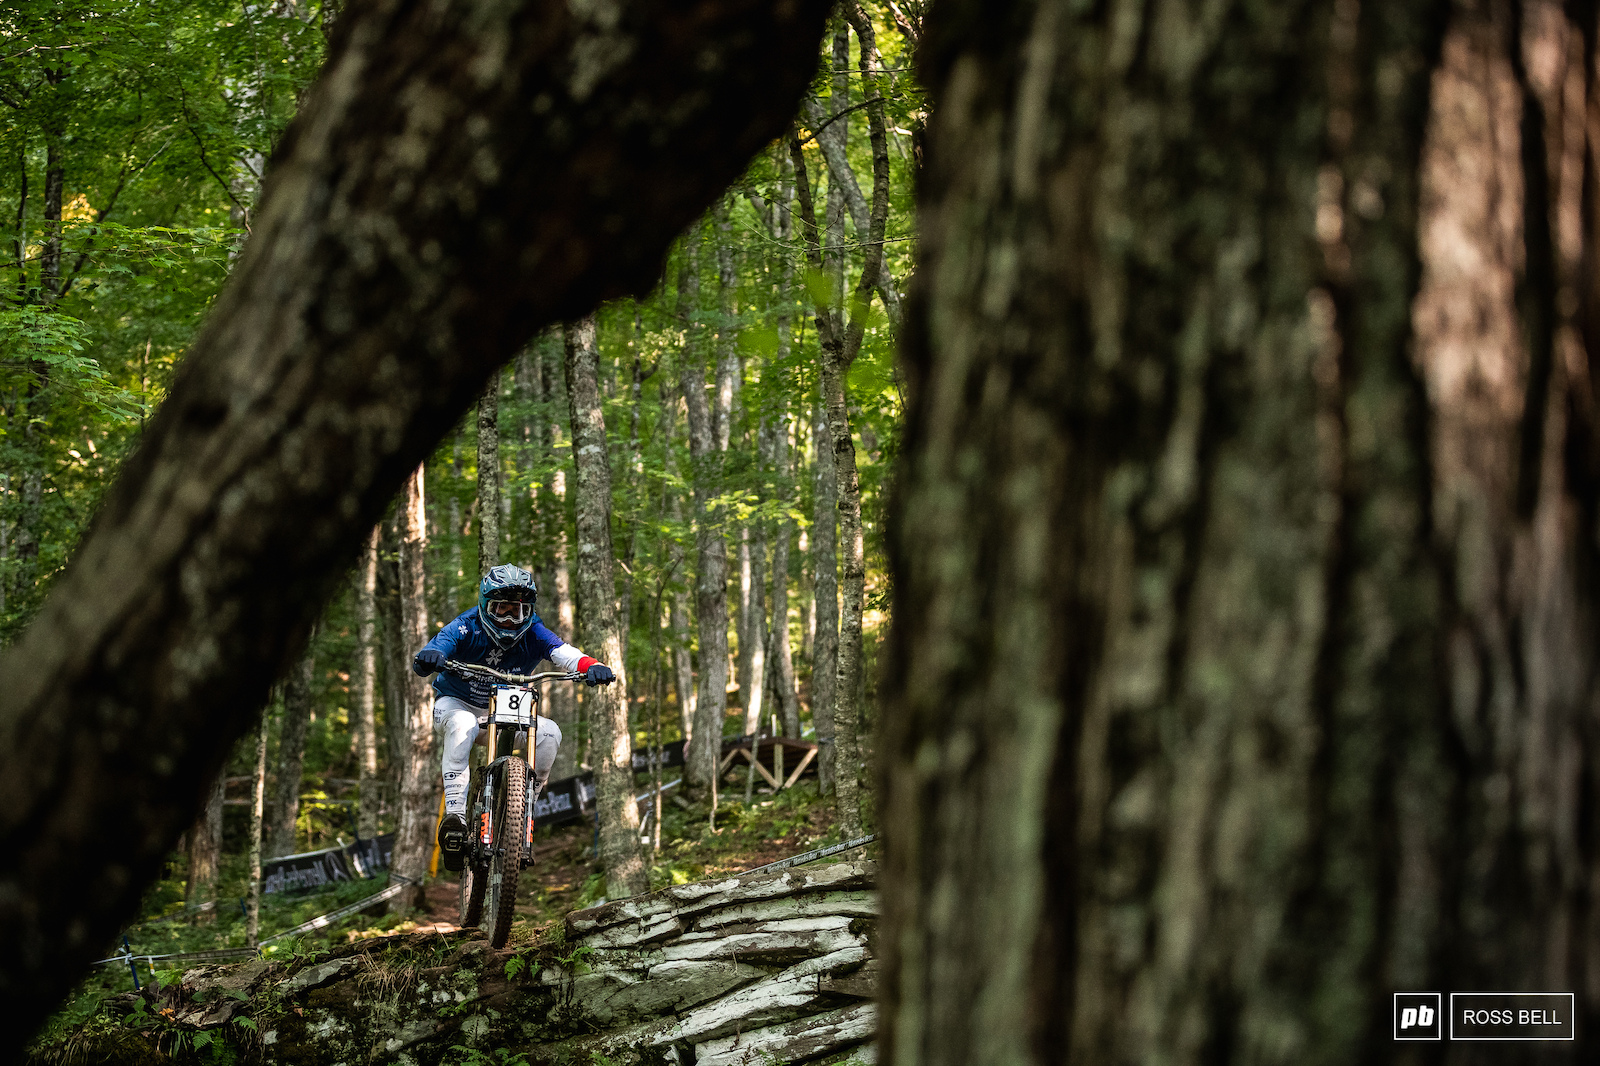 Benoit Coulanges launches off a drop in the lower woods during timed training.